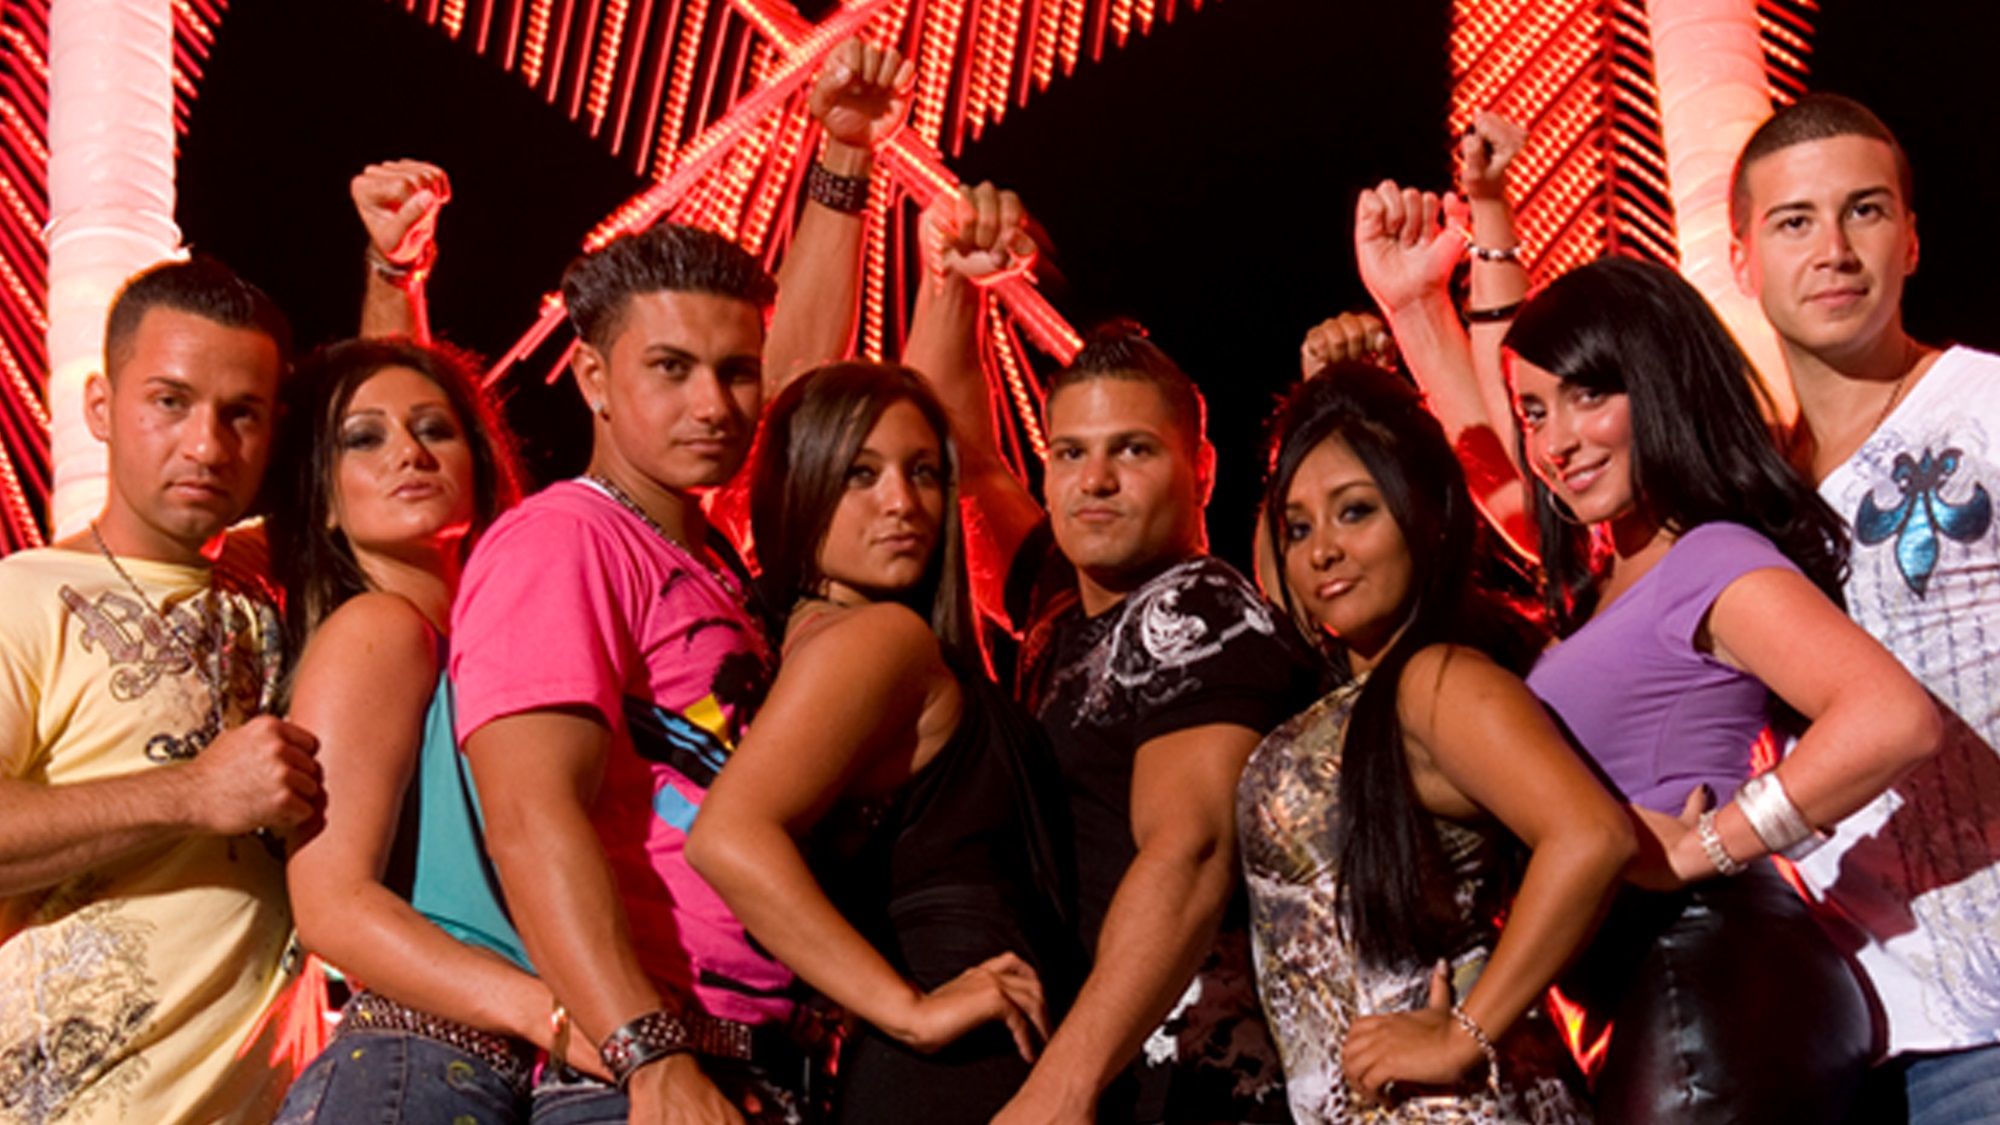 Jersey Shore: 10 Fist Pumping Years